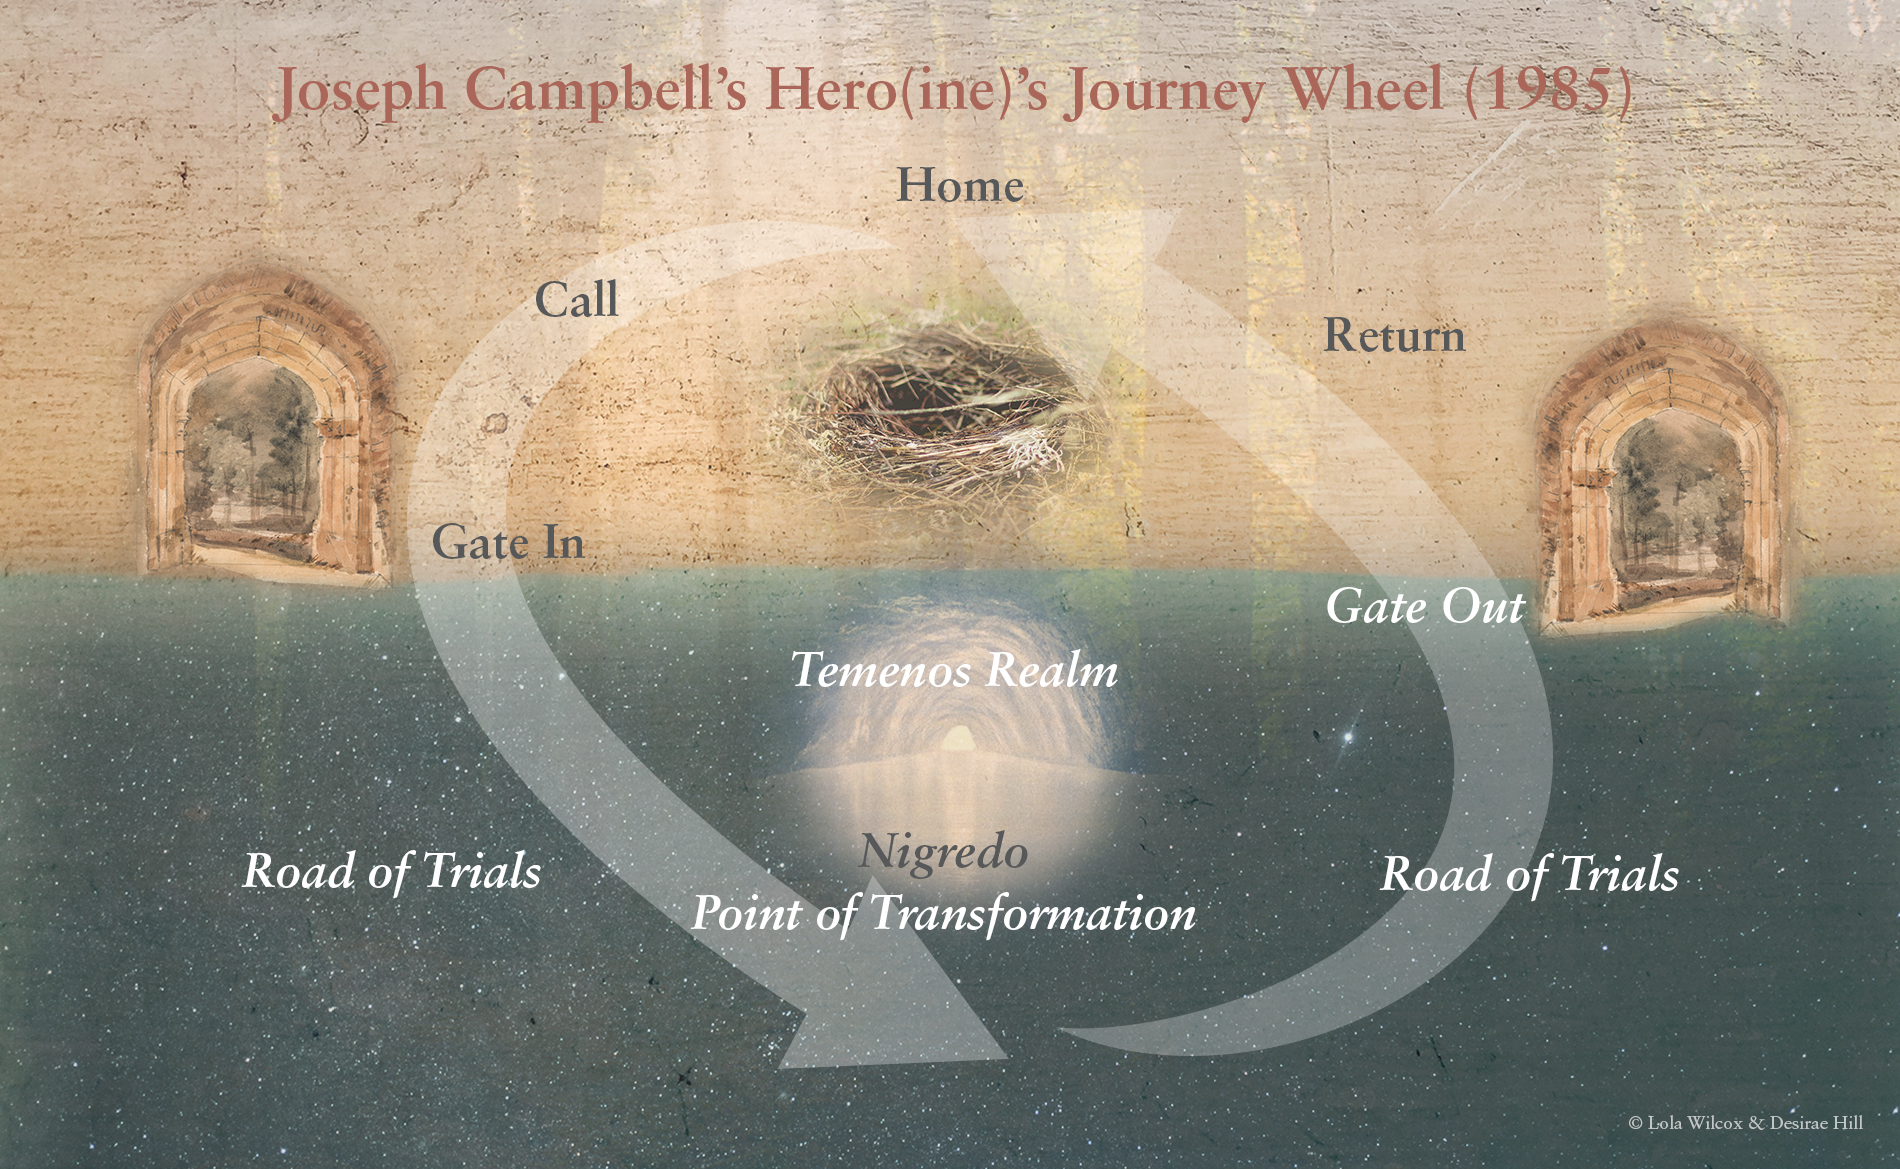 Joseph Campbell's Journey Wheel